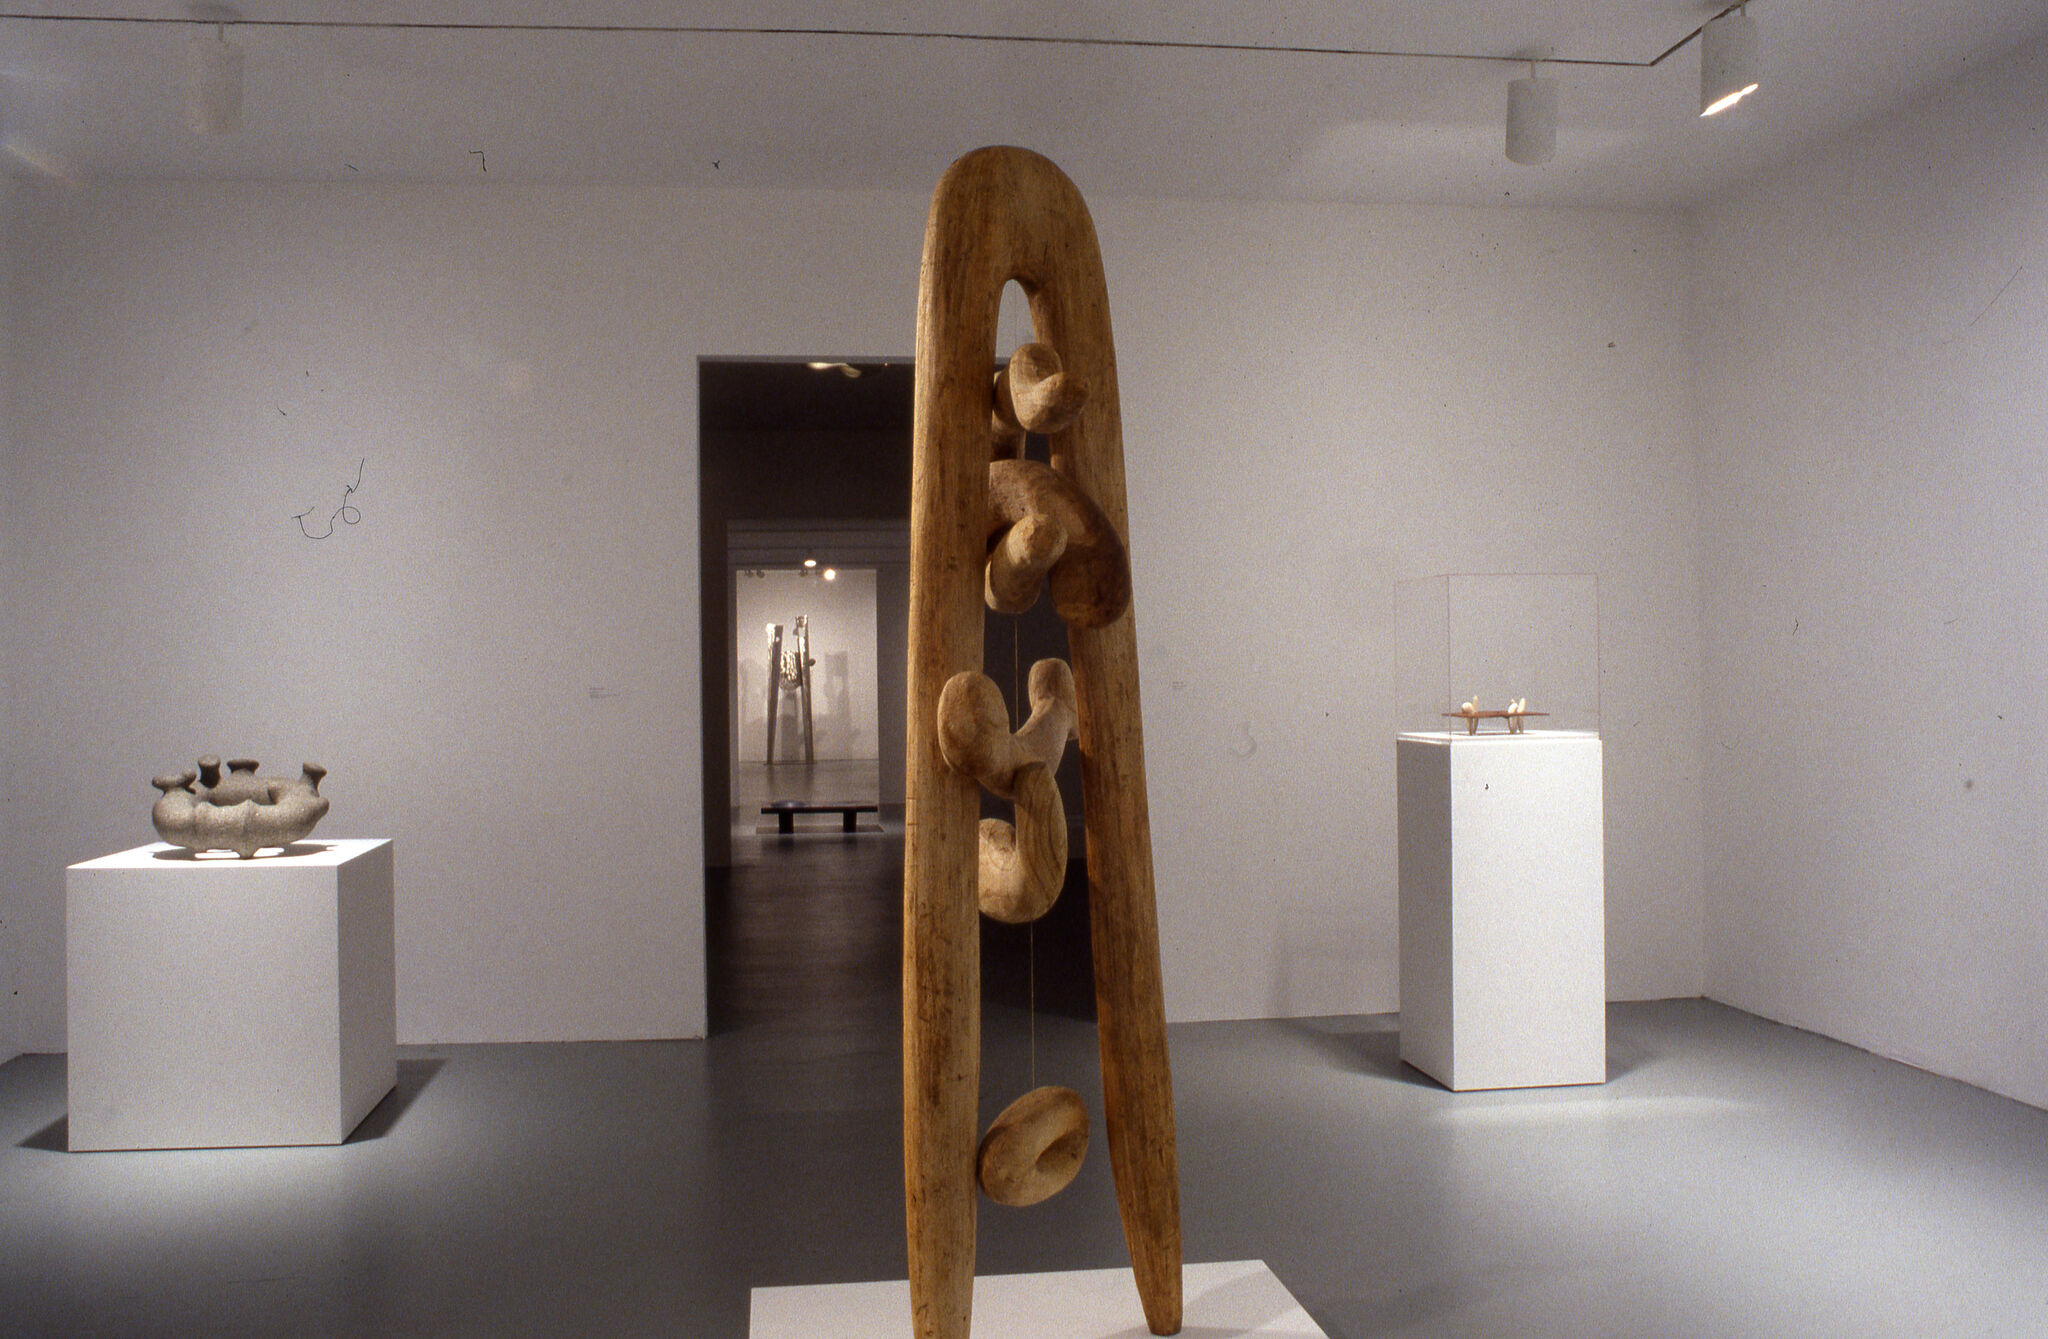 A gallery filled with sculptures.